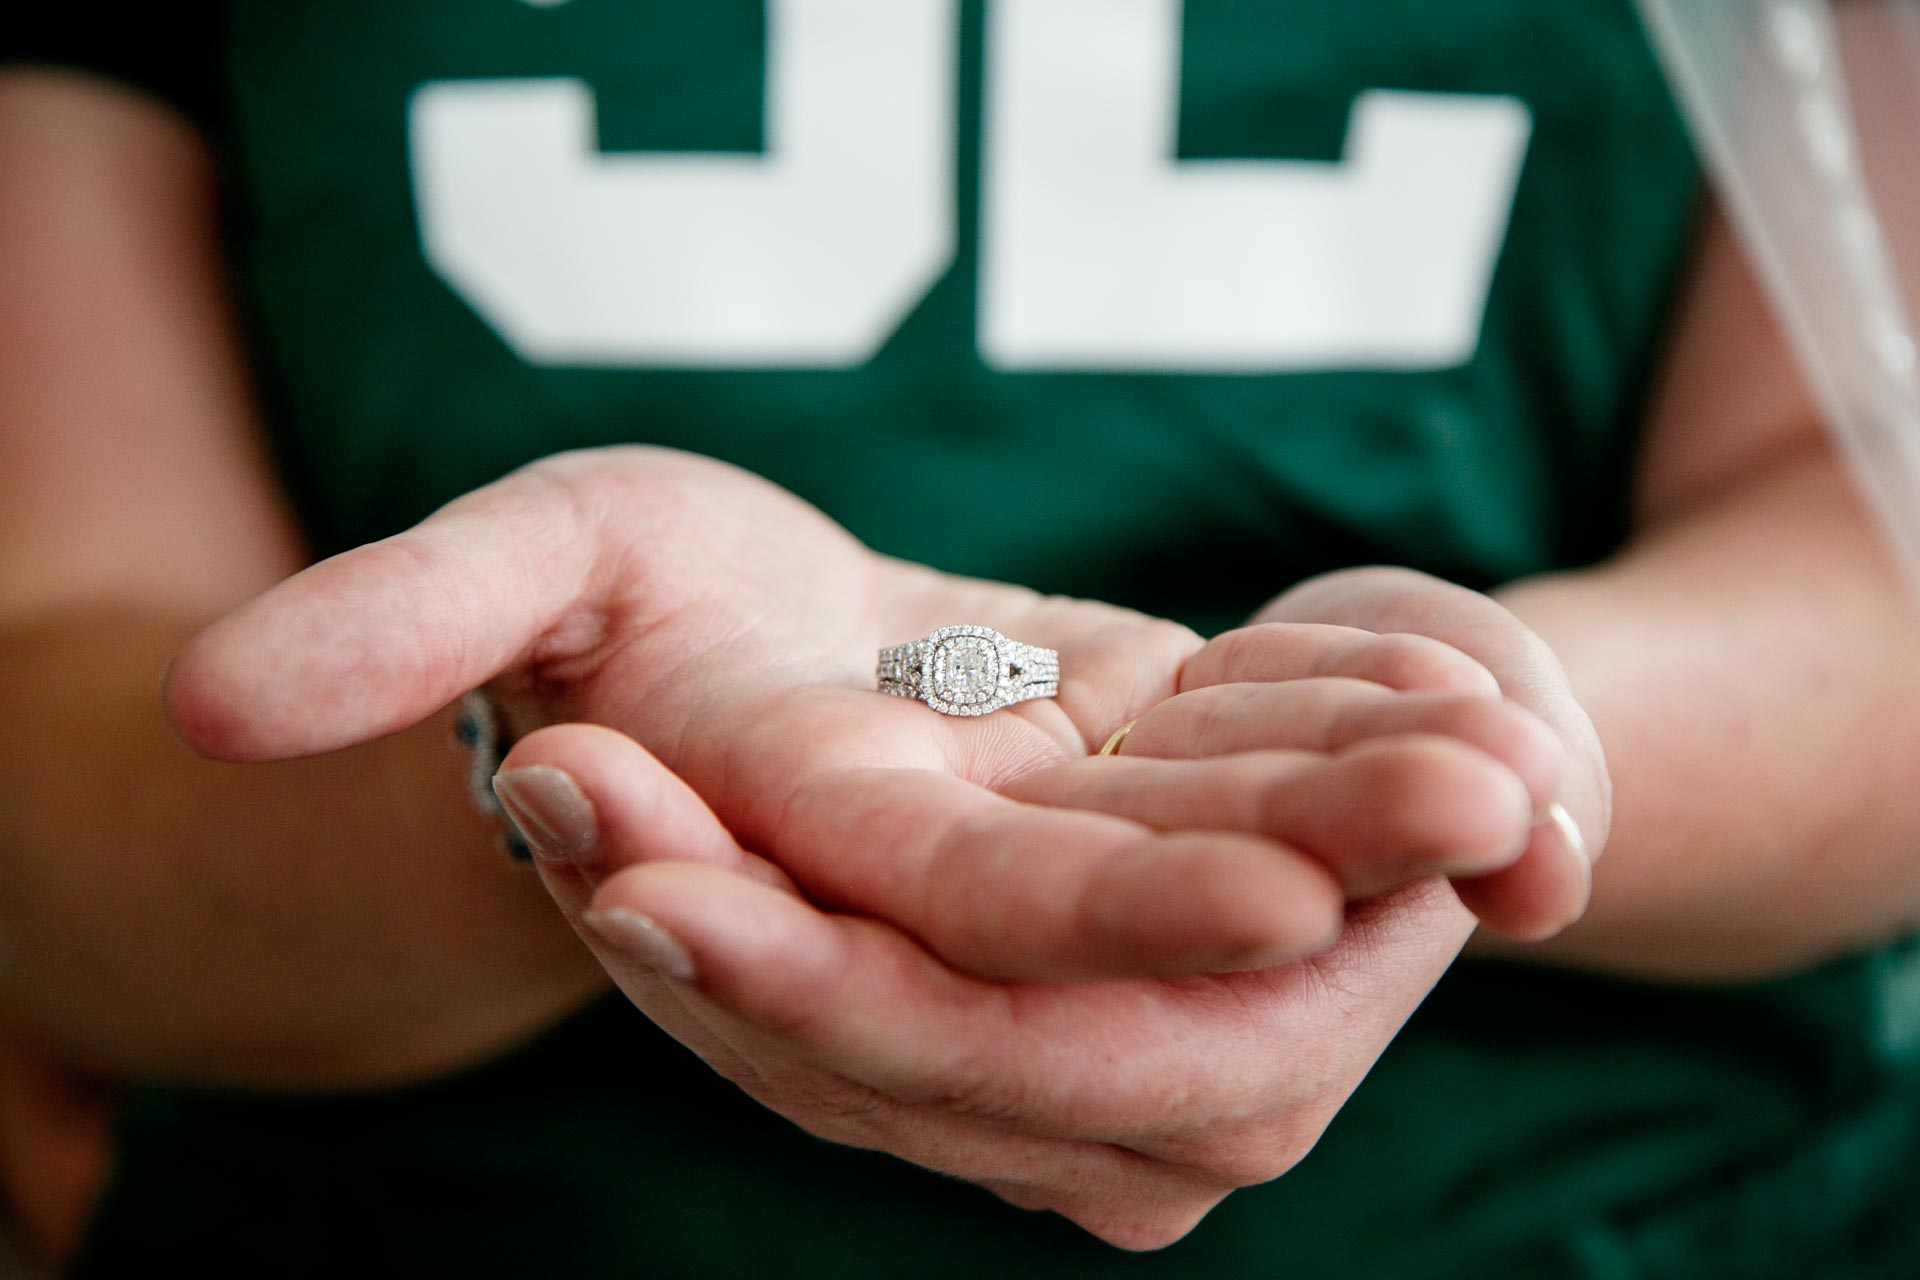 lambeau-field-wedding-bride-groom-adam-shea-photography-green-bay-appleton-neenah-photographer-4.jpg